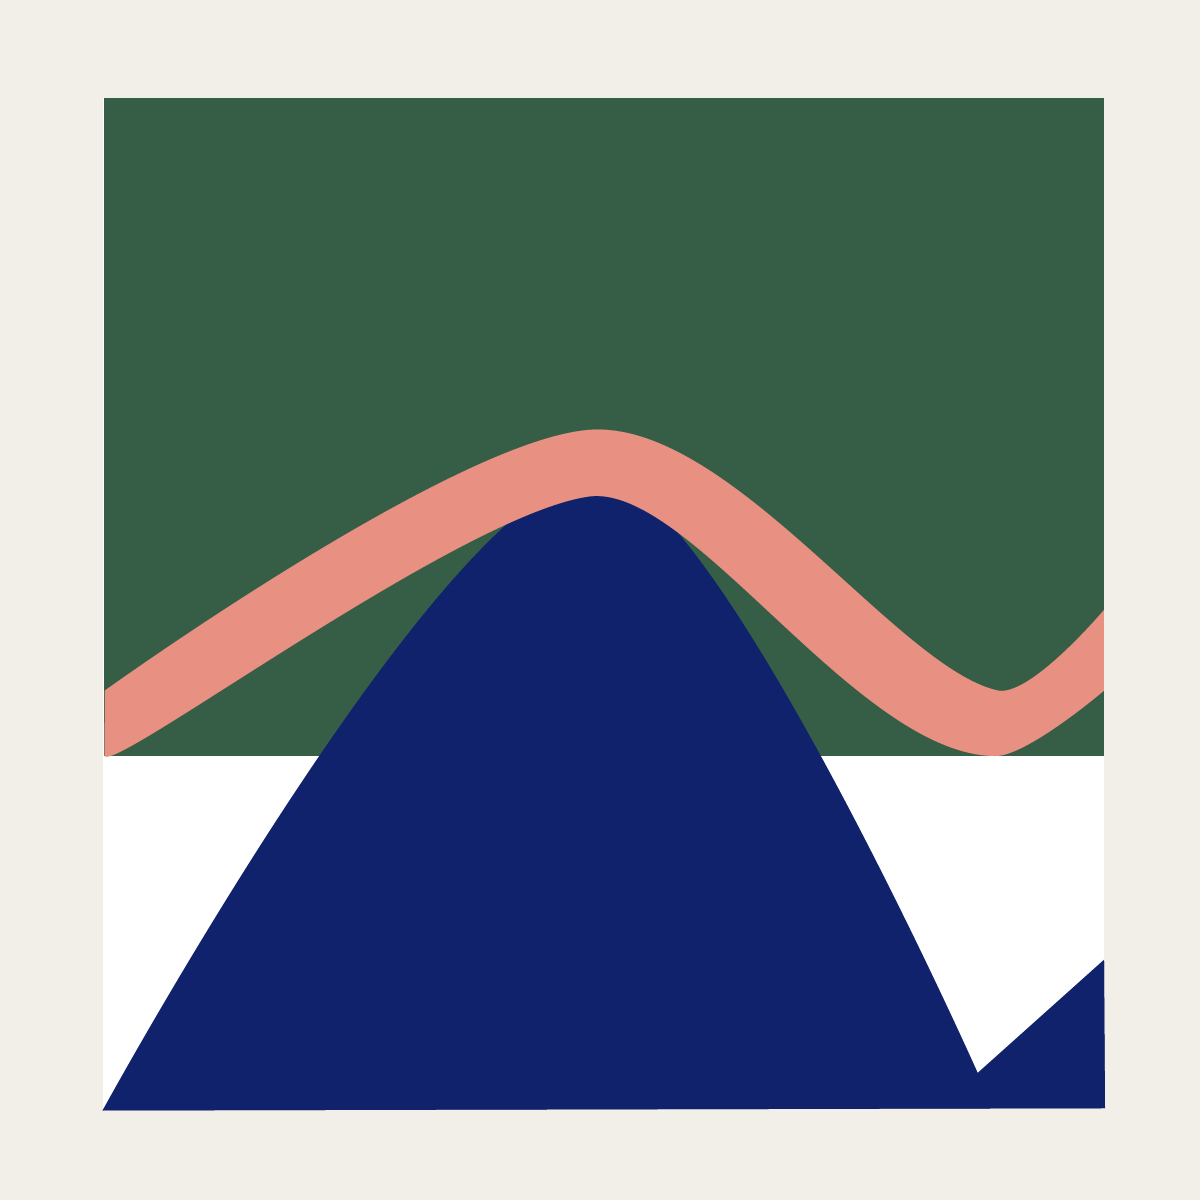 Mountain illustration by Naomi Anne Little